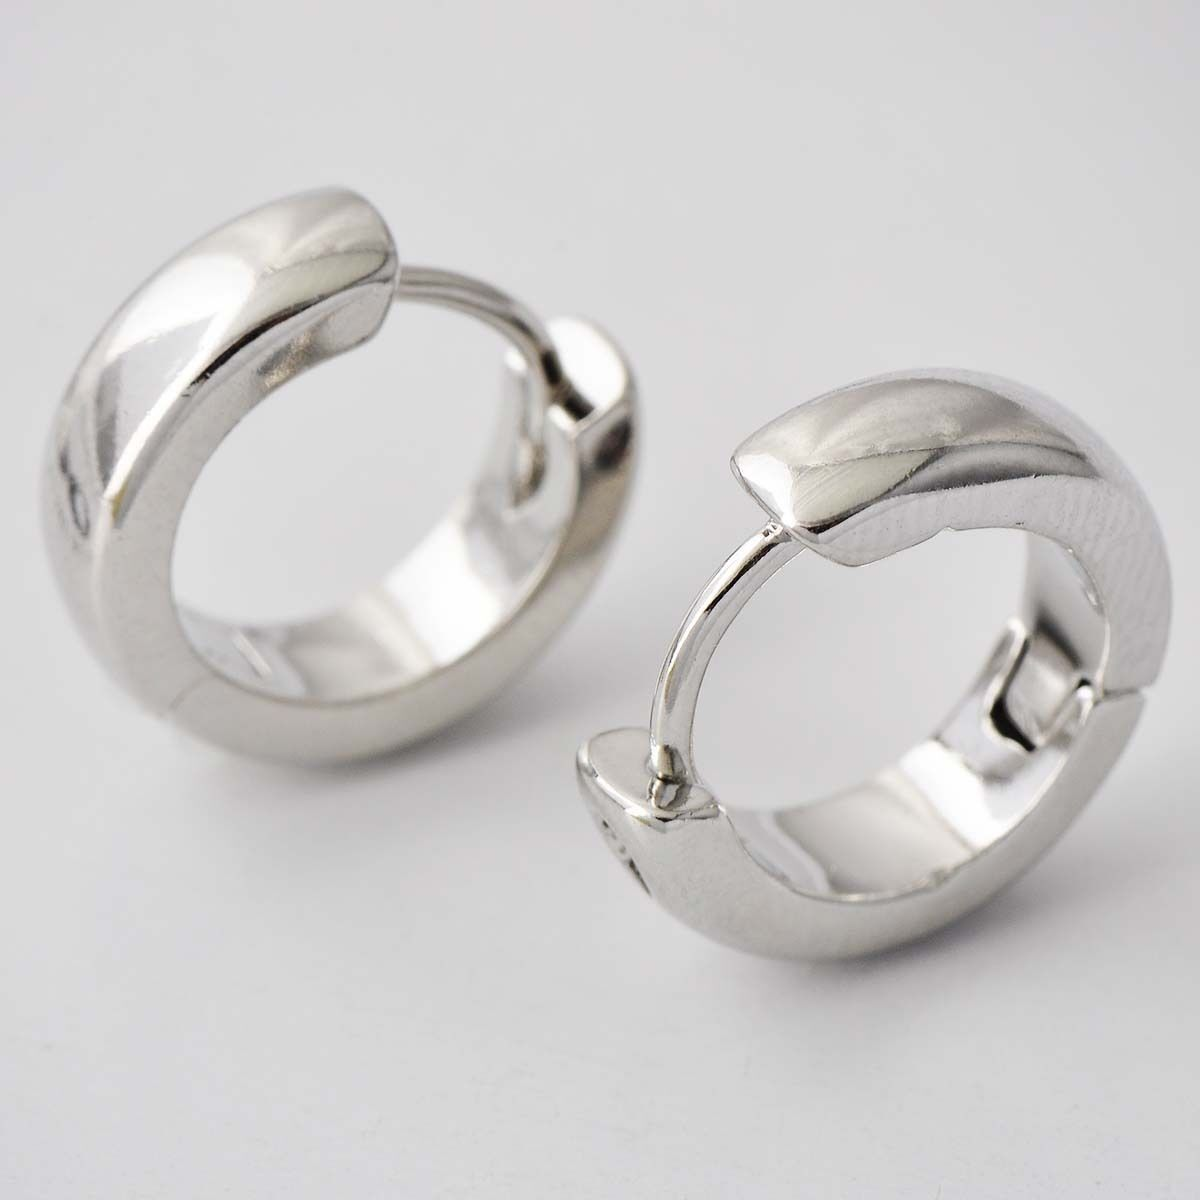 Fantastic Find More Helpful Hints Here Hi Kylie, Id Like To Know More About Finance Options For Your &quotEthnic Silver Hoop Earrings&quot On Gumtree Please Contact Me Thanks! To Deter And Identify Potential Fraud, Spam Or Suspicious Behaviour, We